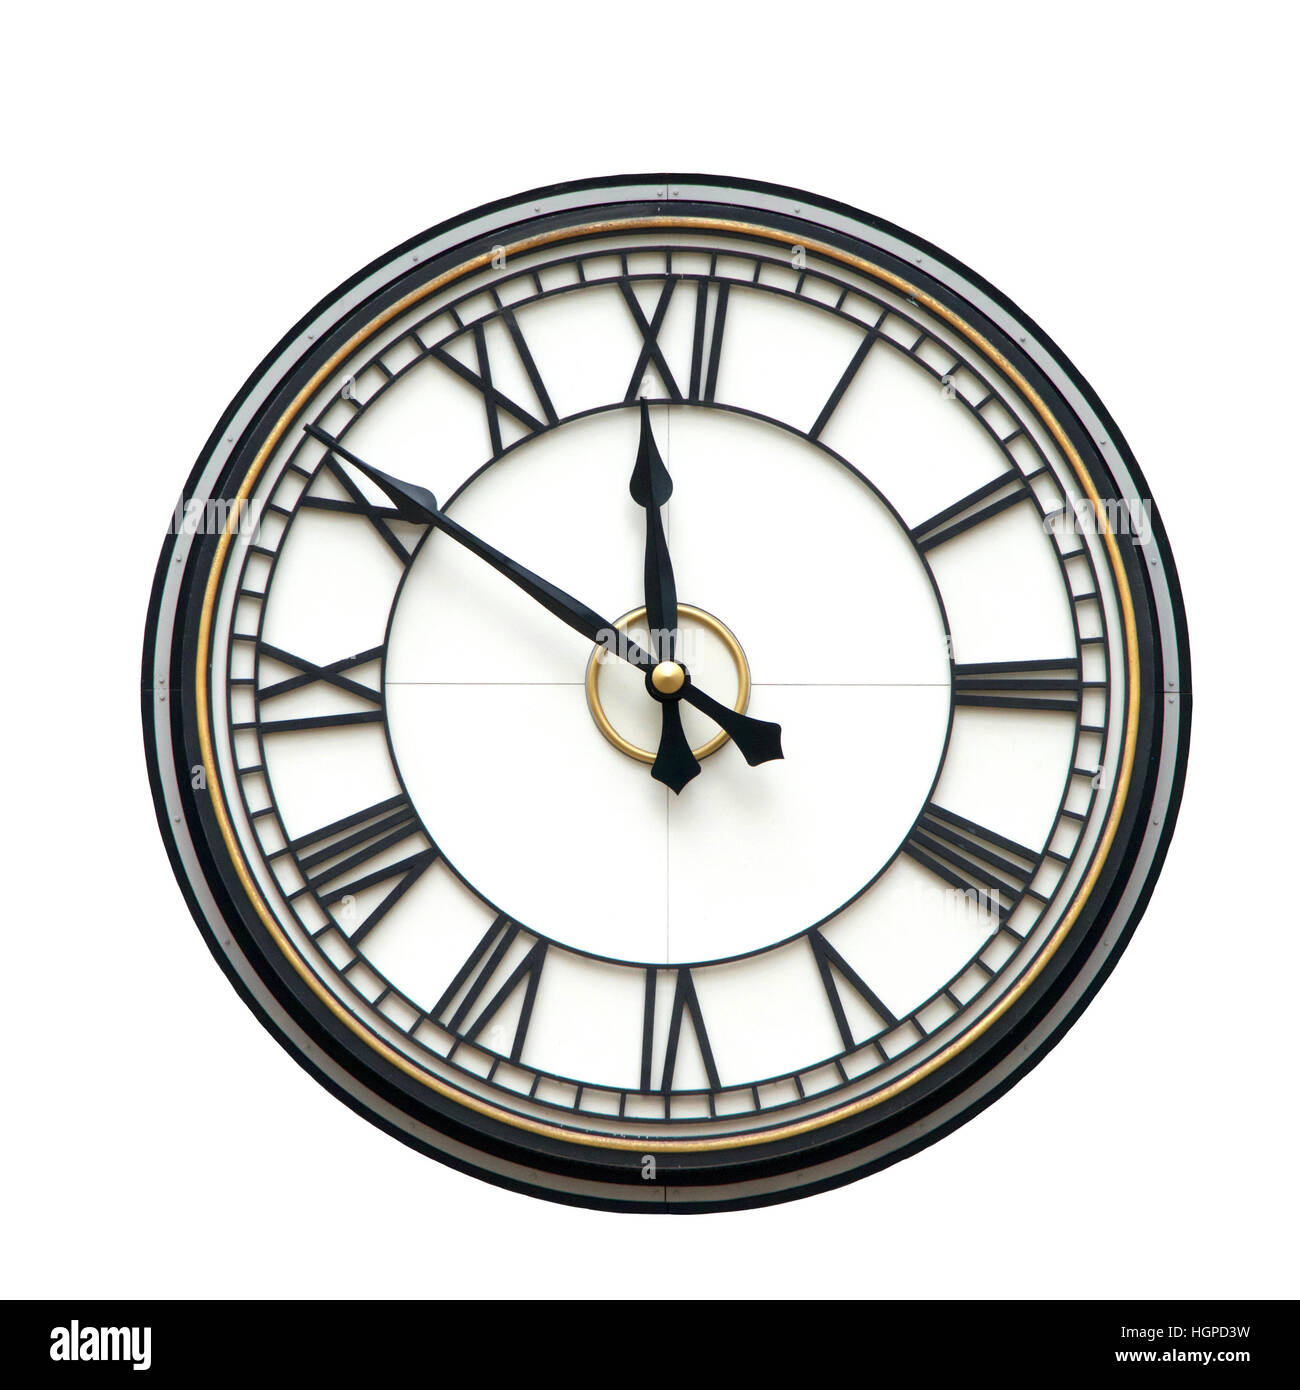 Clock with roman numerals for hours, hands at nine minutes to twelve o'clock, isolated on white background - Stock Image